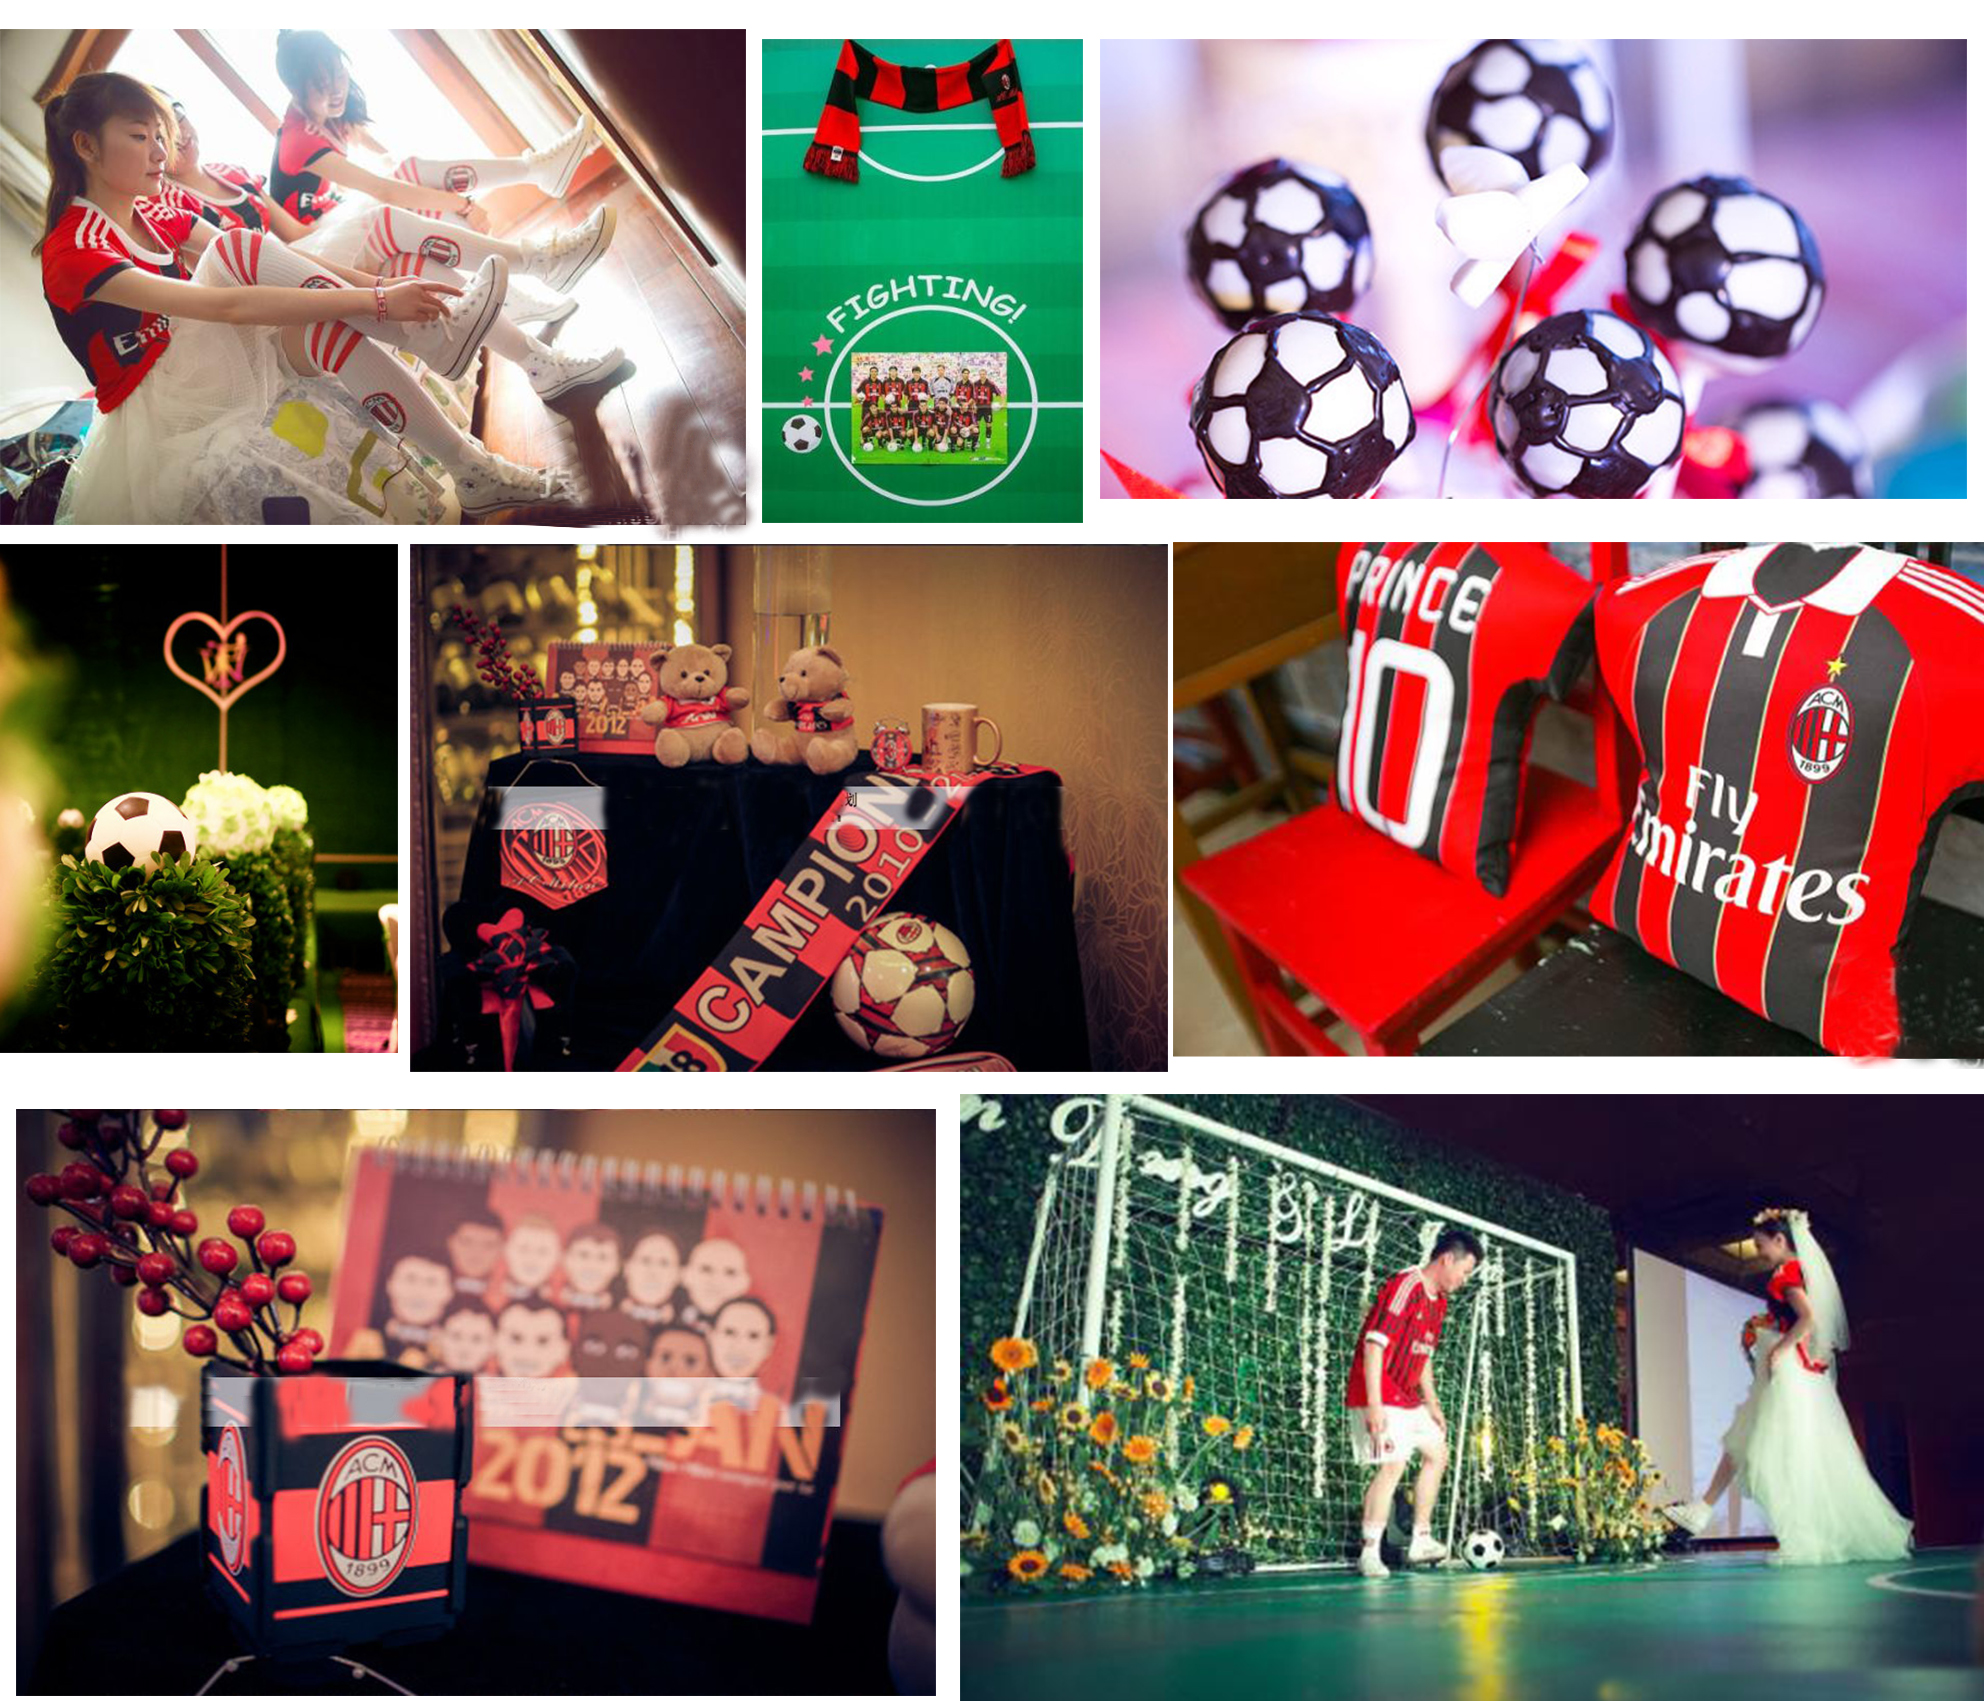 Football Themed Wedding Party - Happyinvitation.com Invitation World